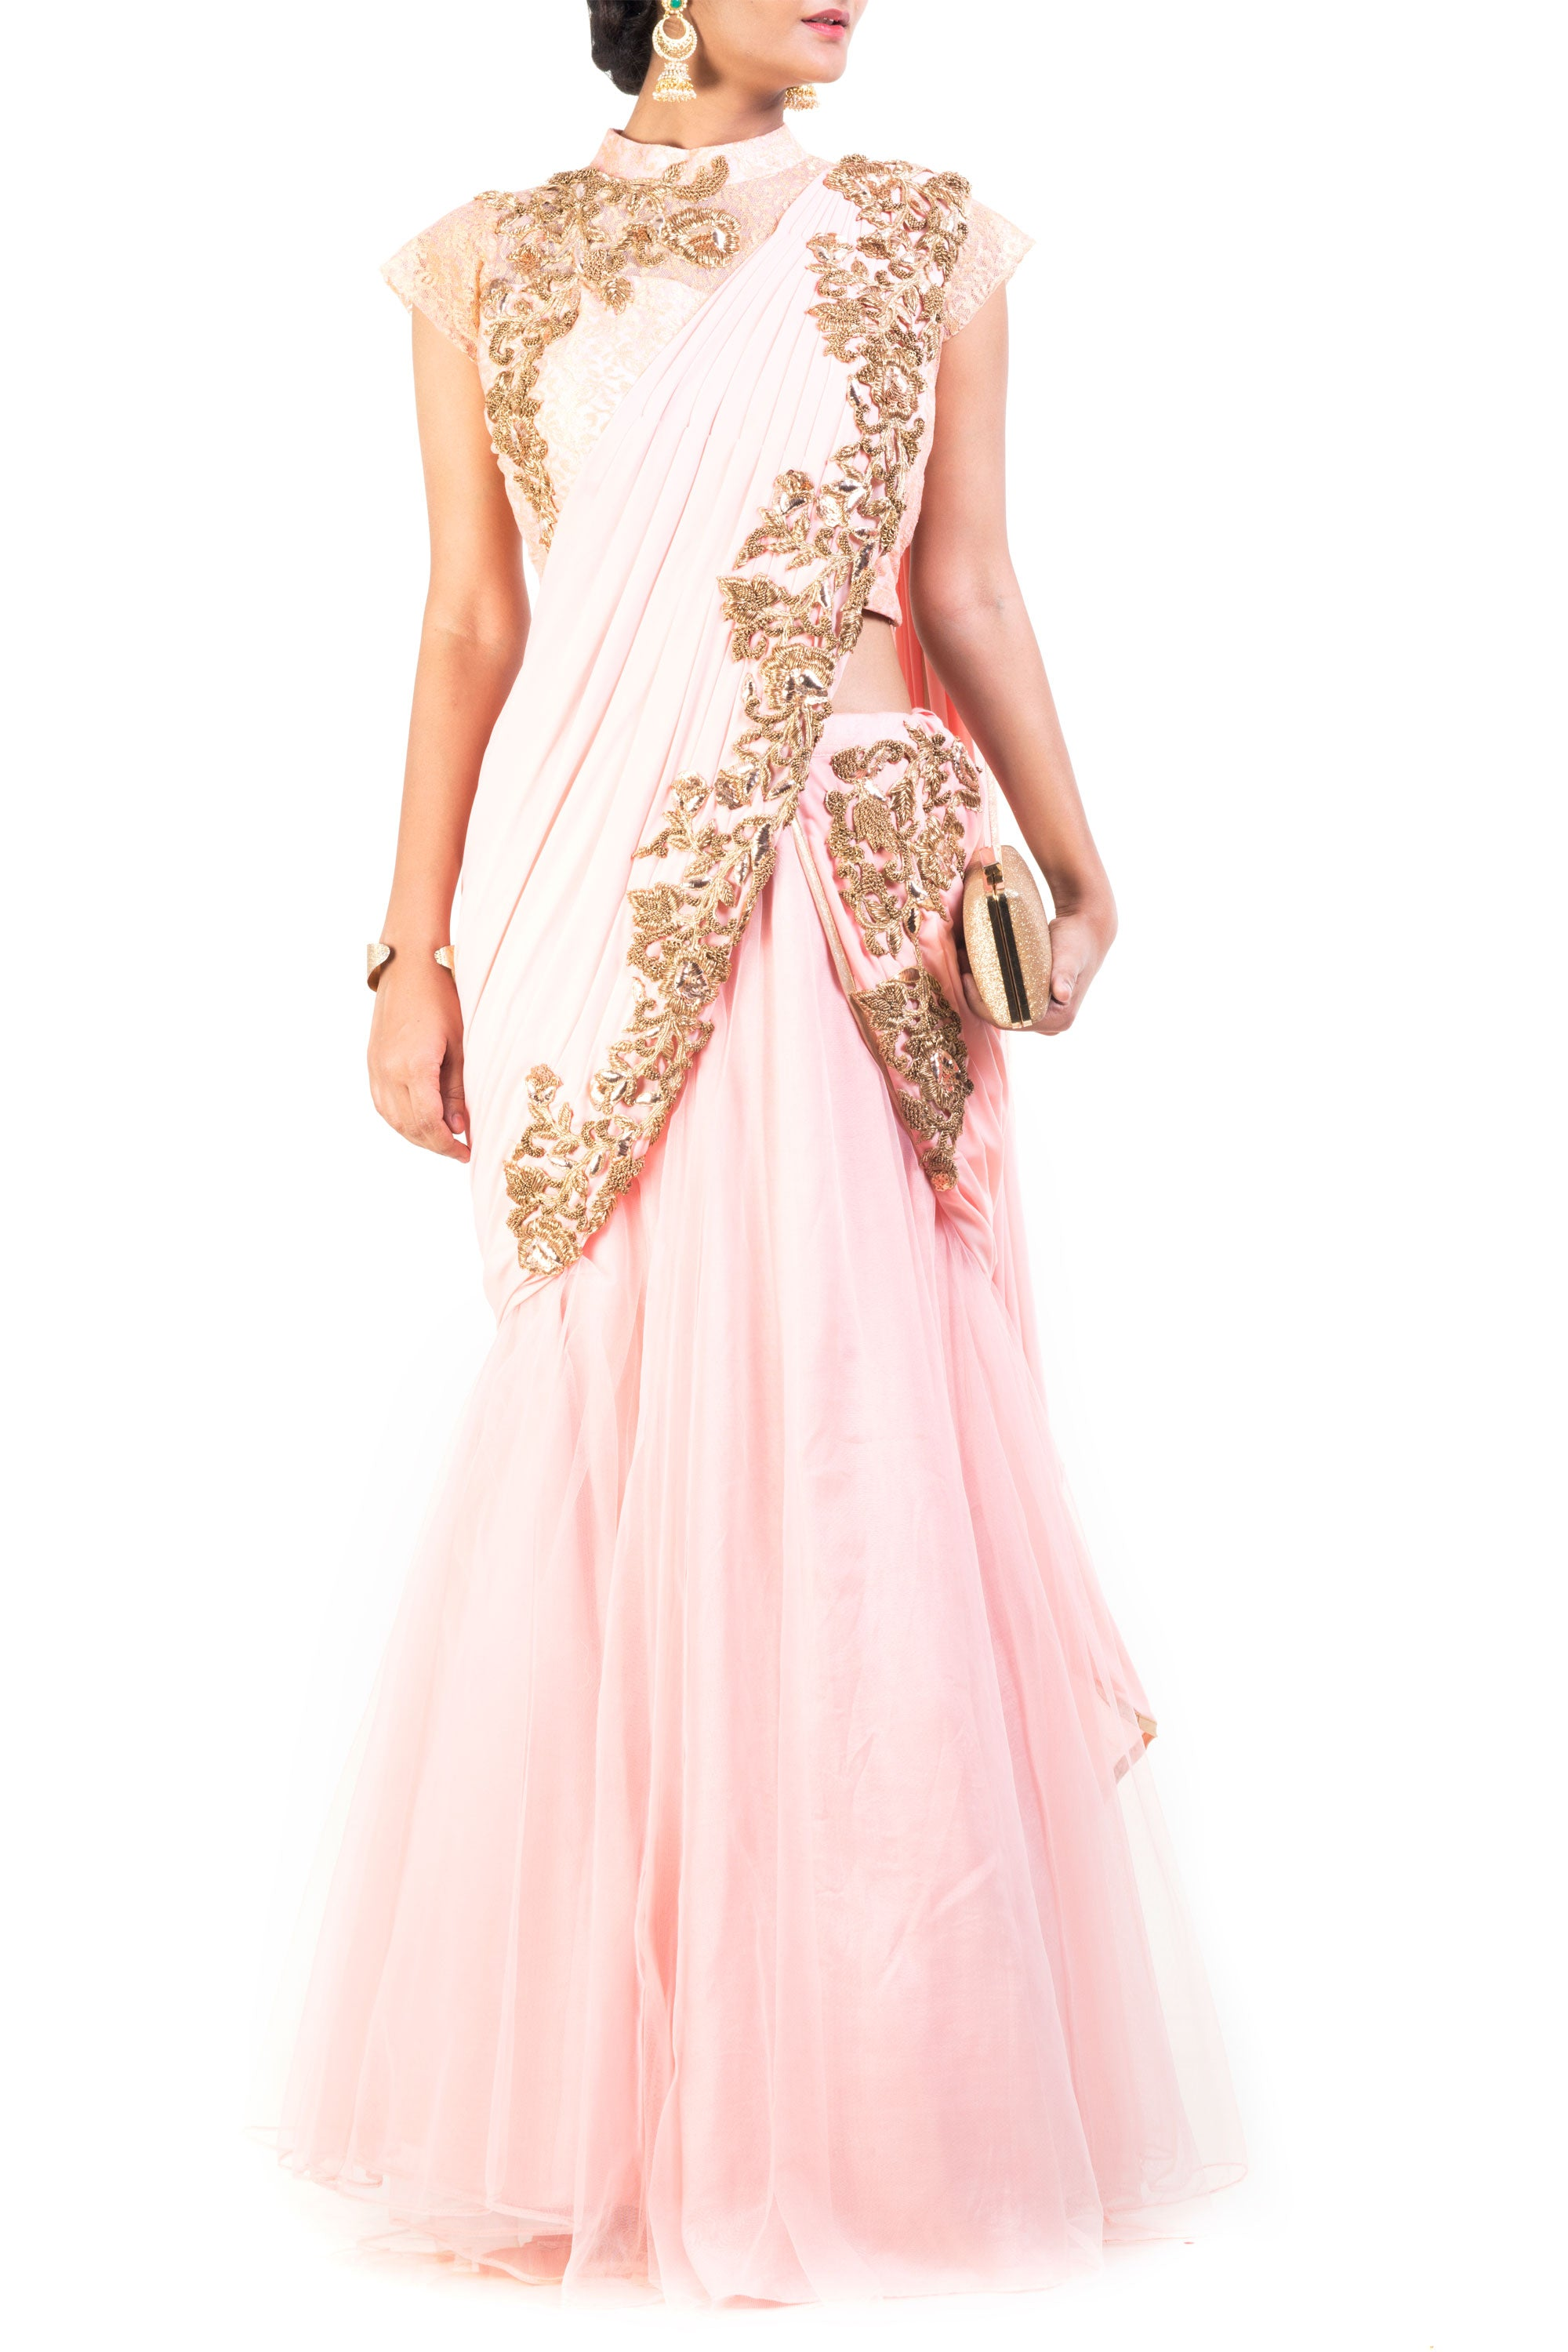 Blush Pink Lehenga Set With Cinderella Lace Front